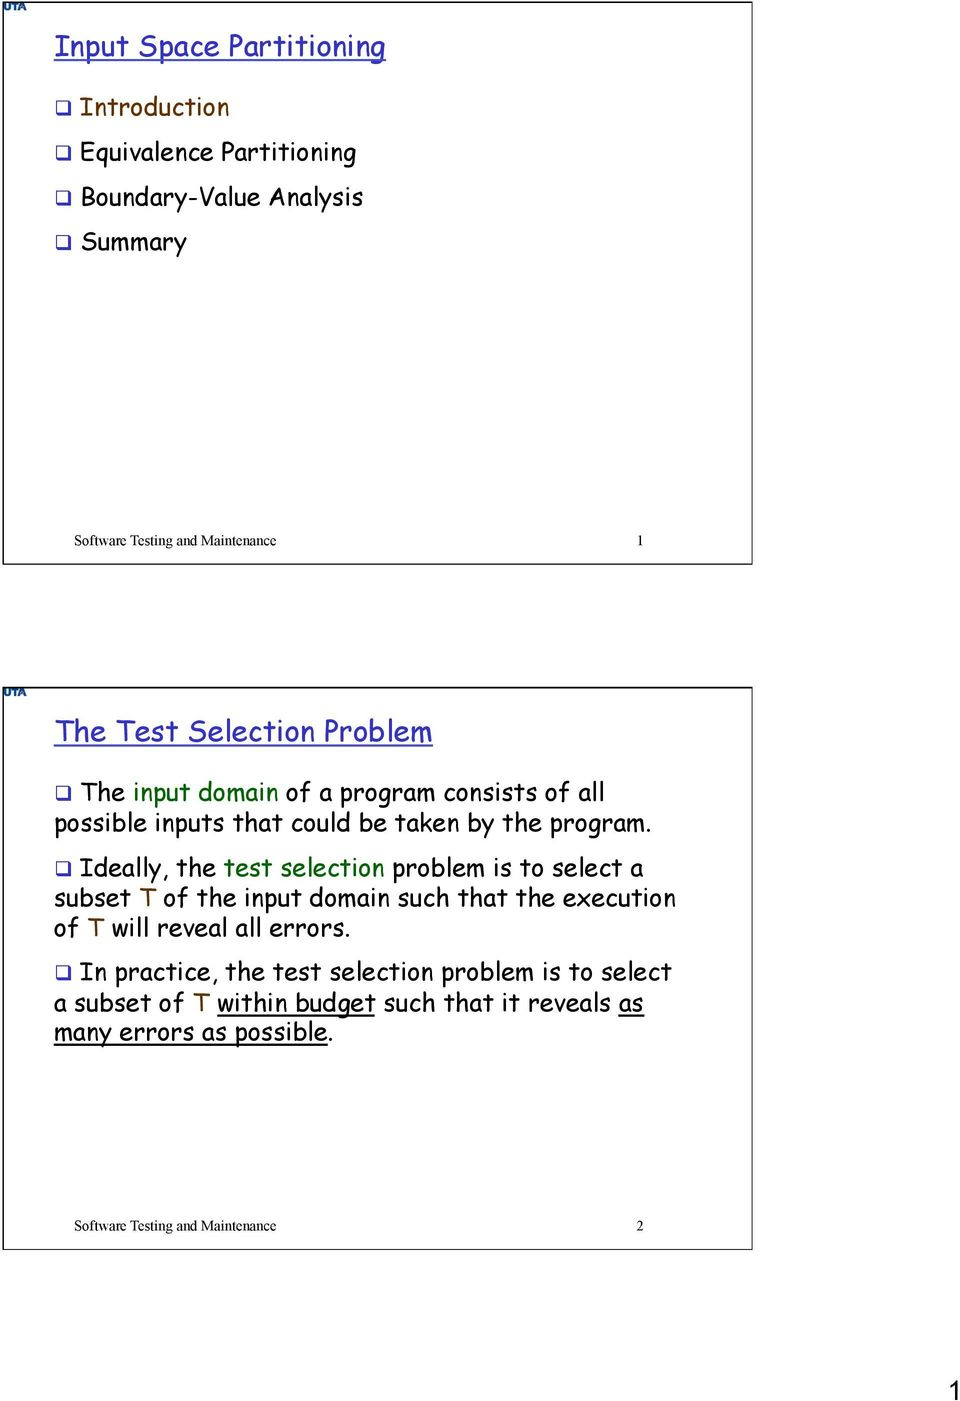 Ideally, the test selection problem is to select a subset T of the input domain such that the execution of T will reveal all errors.